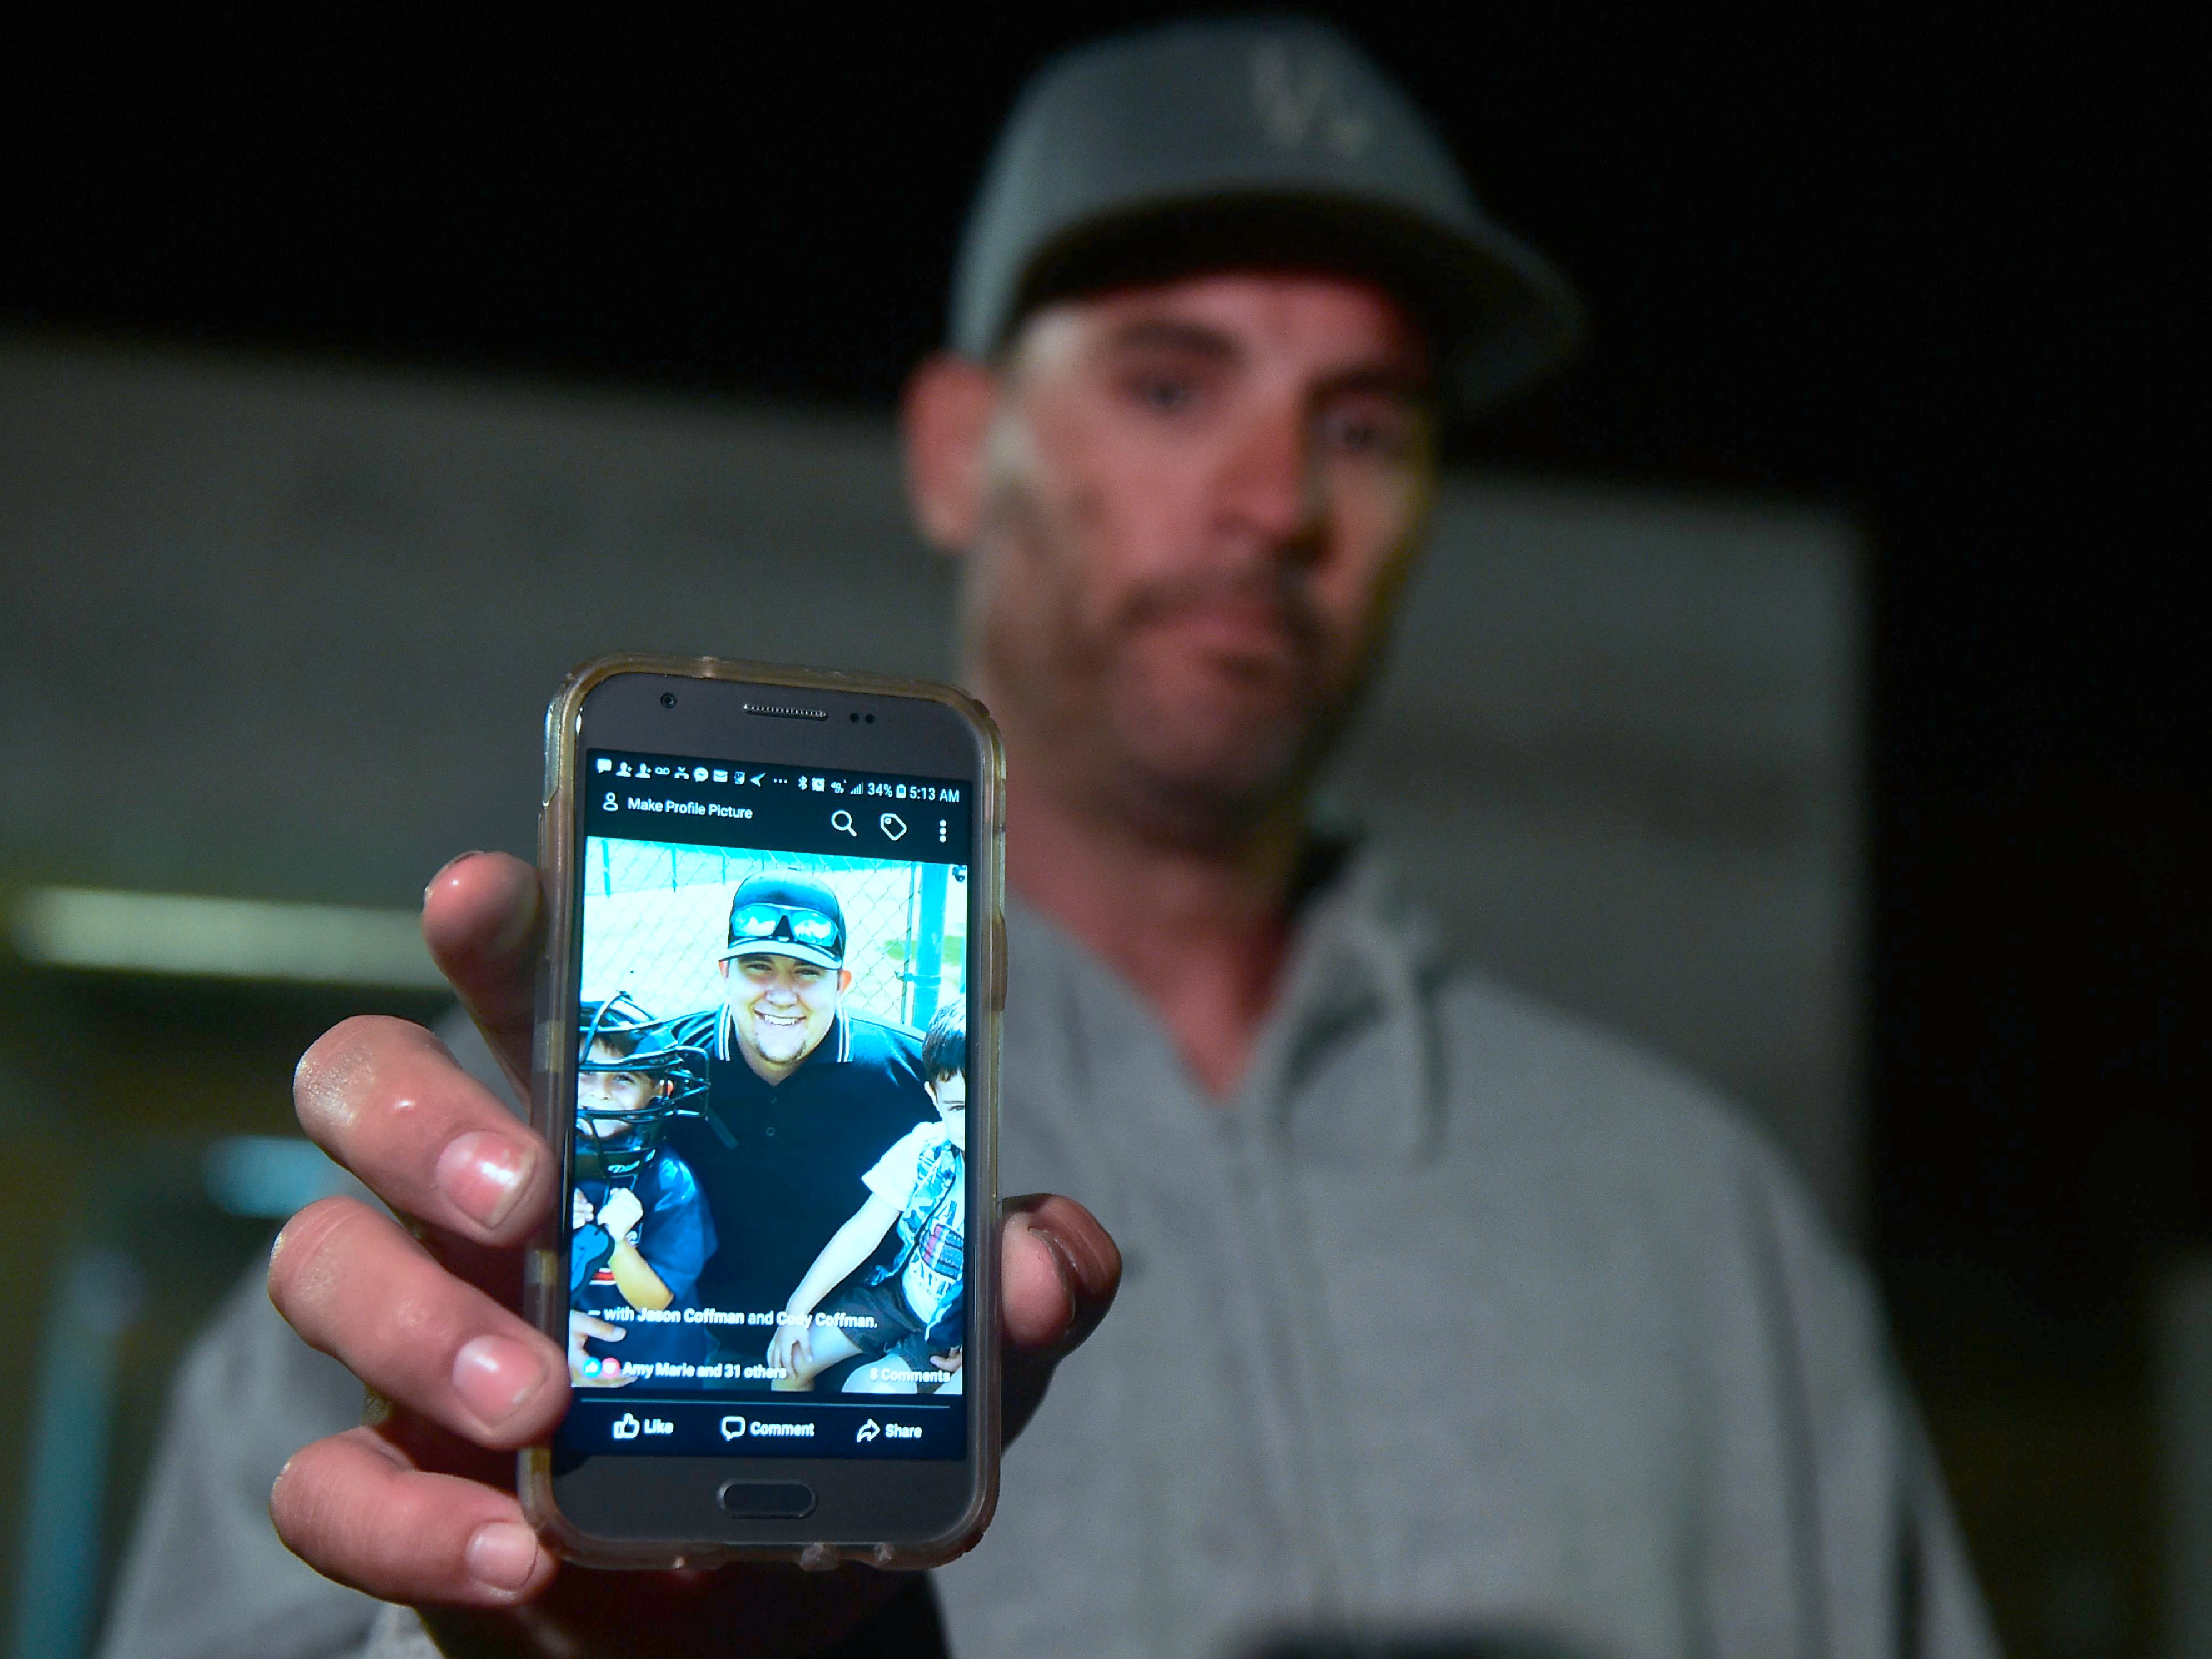 Jason Coffman displays a photo of his son Cody outside the Thousands Oaks Teene Center where he came hoping to find his son who was at the Borderline Bar and Grill in Thousand Oaks, California, on November 8, 2018. - Twelve people, including a police sergeant, were shot dead in a shooting at the bar close to Los Angeles, police said Thursday. All the victims were killed inside the bar in the suburb of Thousand Oaks late on November 7, including the officer who had been called to the scene, Sheriff Geoff Dean told reporters. The gunman was also dead at the scene, Dean added. (Photo by Frederic J. BROWN / AFP)        (Photo credit should read FREDERIC J. BROWN/AFP/Getty Images) ORG XMIT: 775256014 ORIG FILE ID: 1059133152.jpg